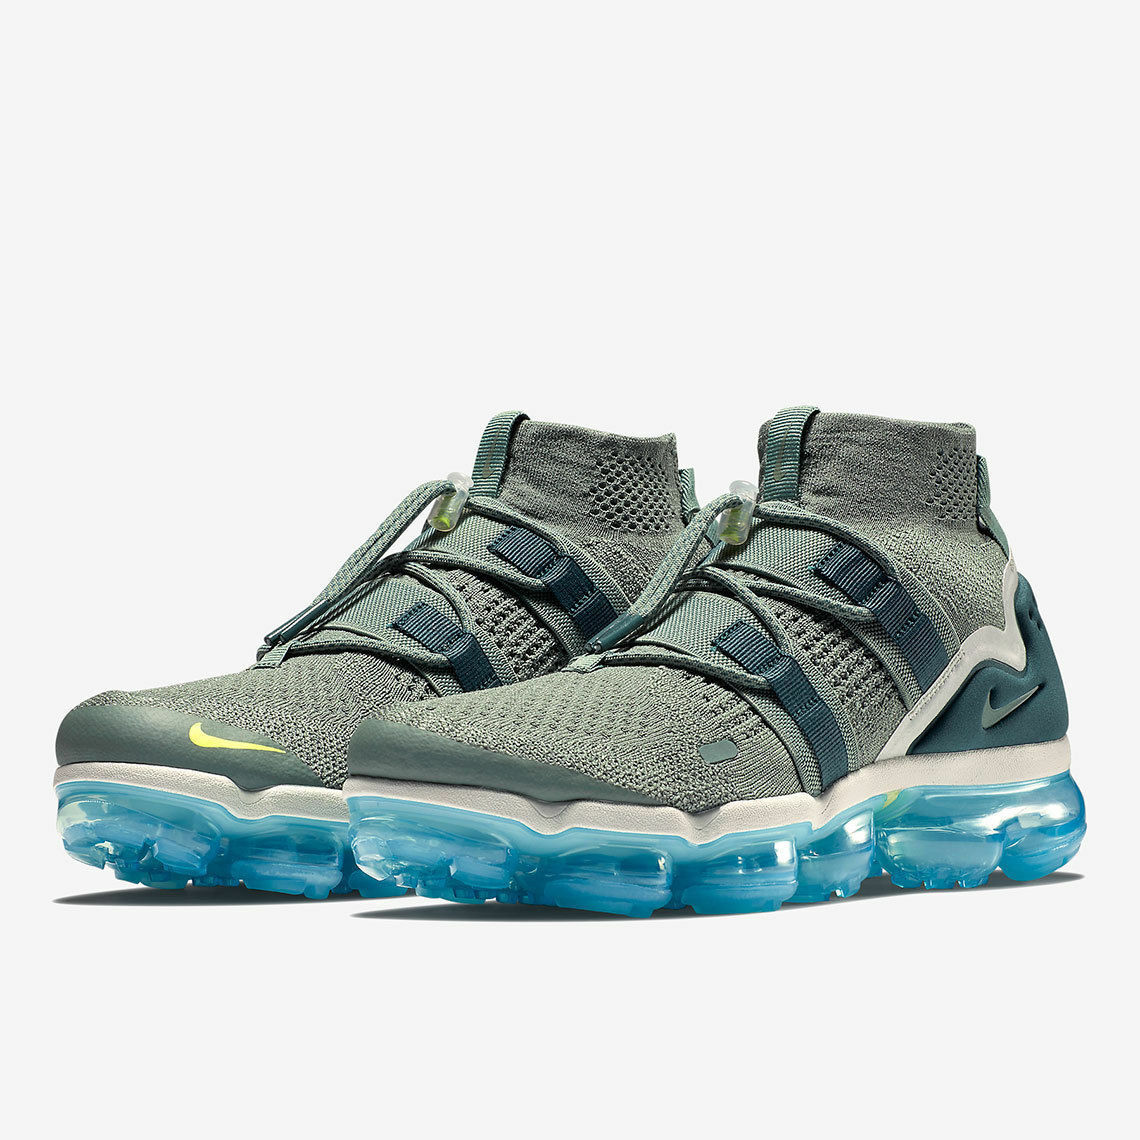 Nike Air Vapormax Flyknit  FK Utility Utility Utility Player Clay Green Blue SZ 8.5 AH6834-300 d07023